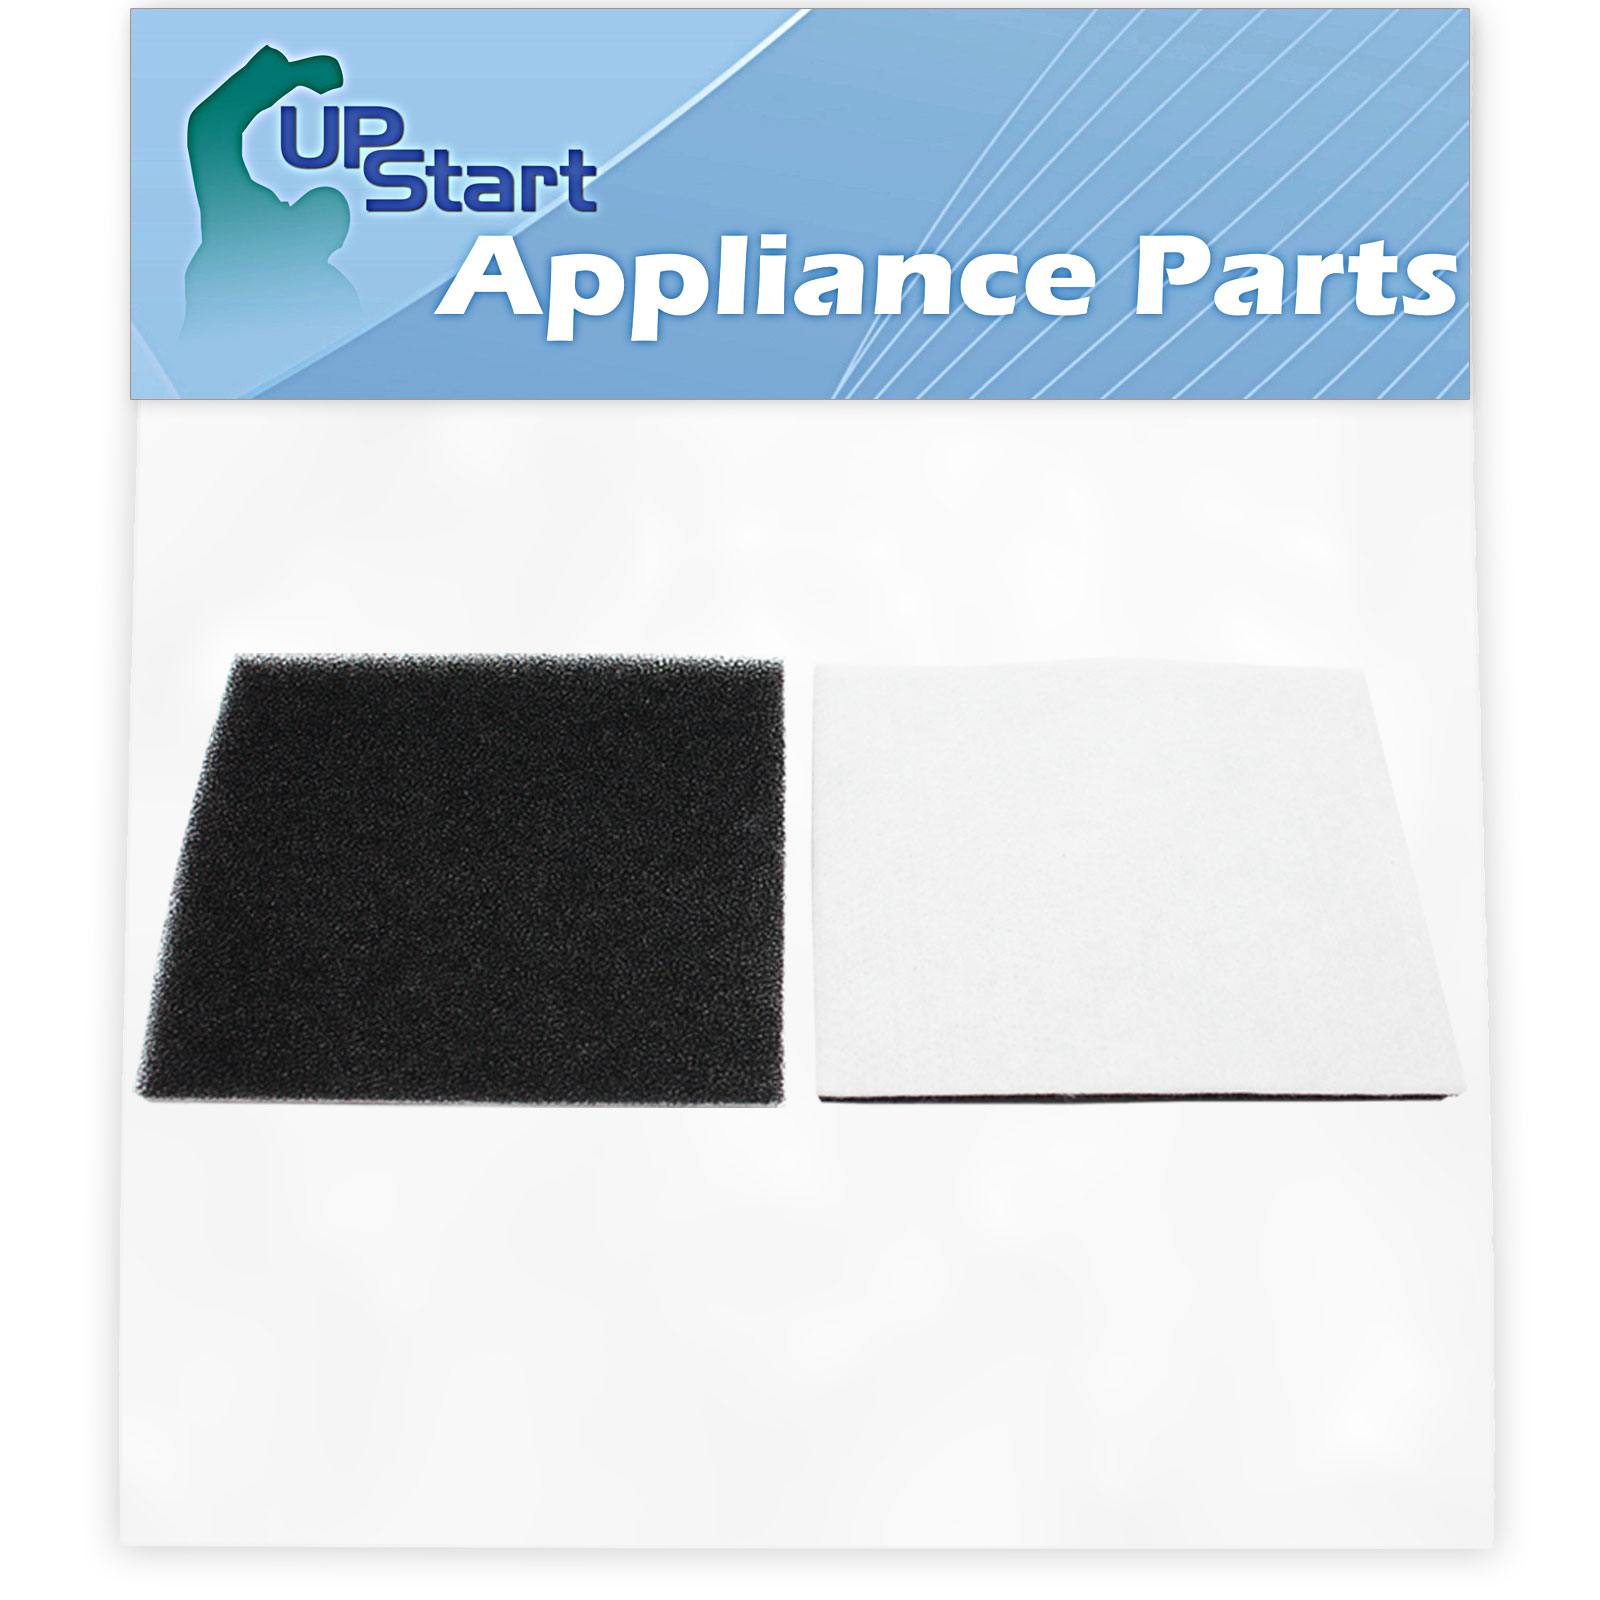 Replacement Kenmore 11621614014 Vacuum Foam Filter with 7-Piece Micro Vacuum Attachment Kit - Compatible Kenmore 86883, 8175084, CF-1 Progressive & Whispertone Foam Filter - image 1 of 4